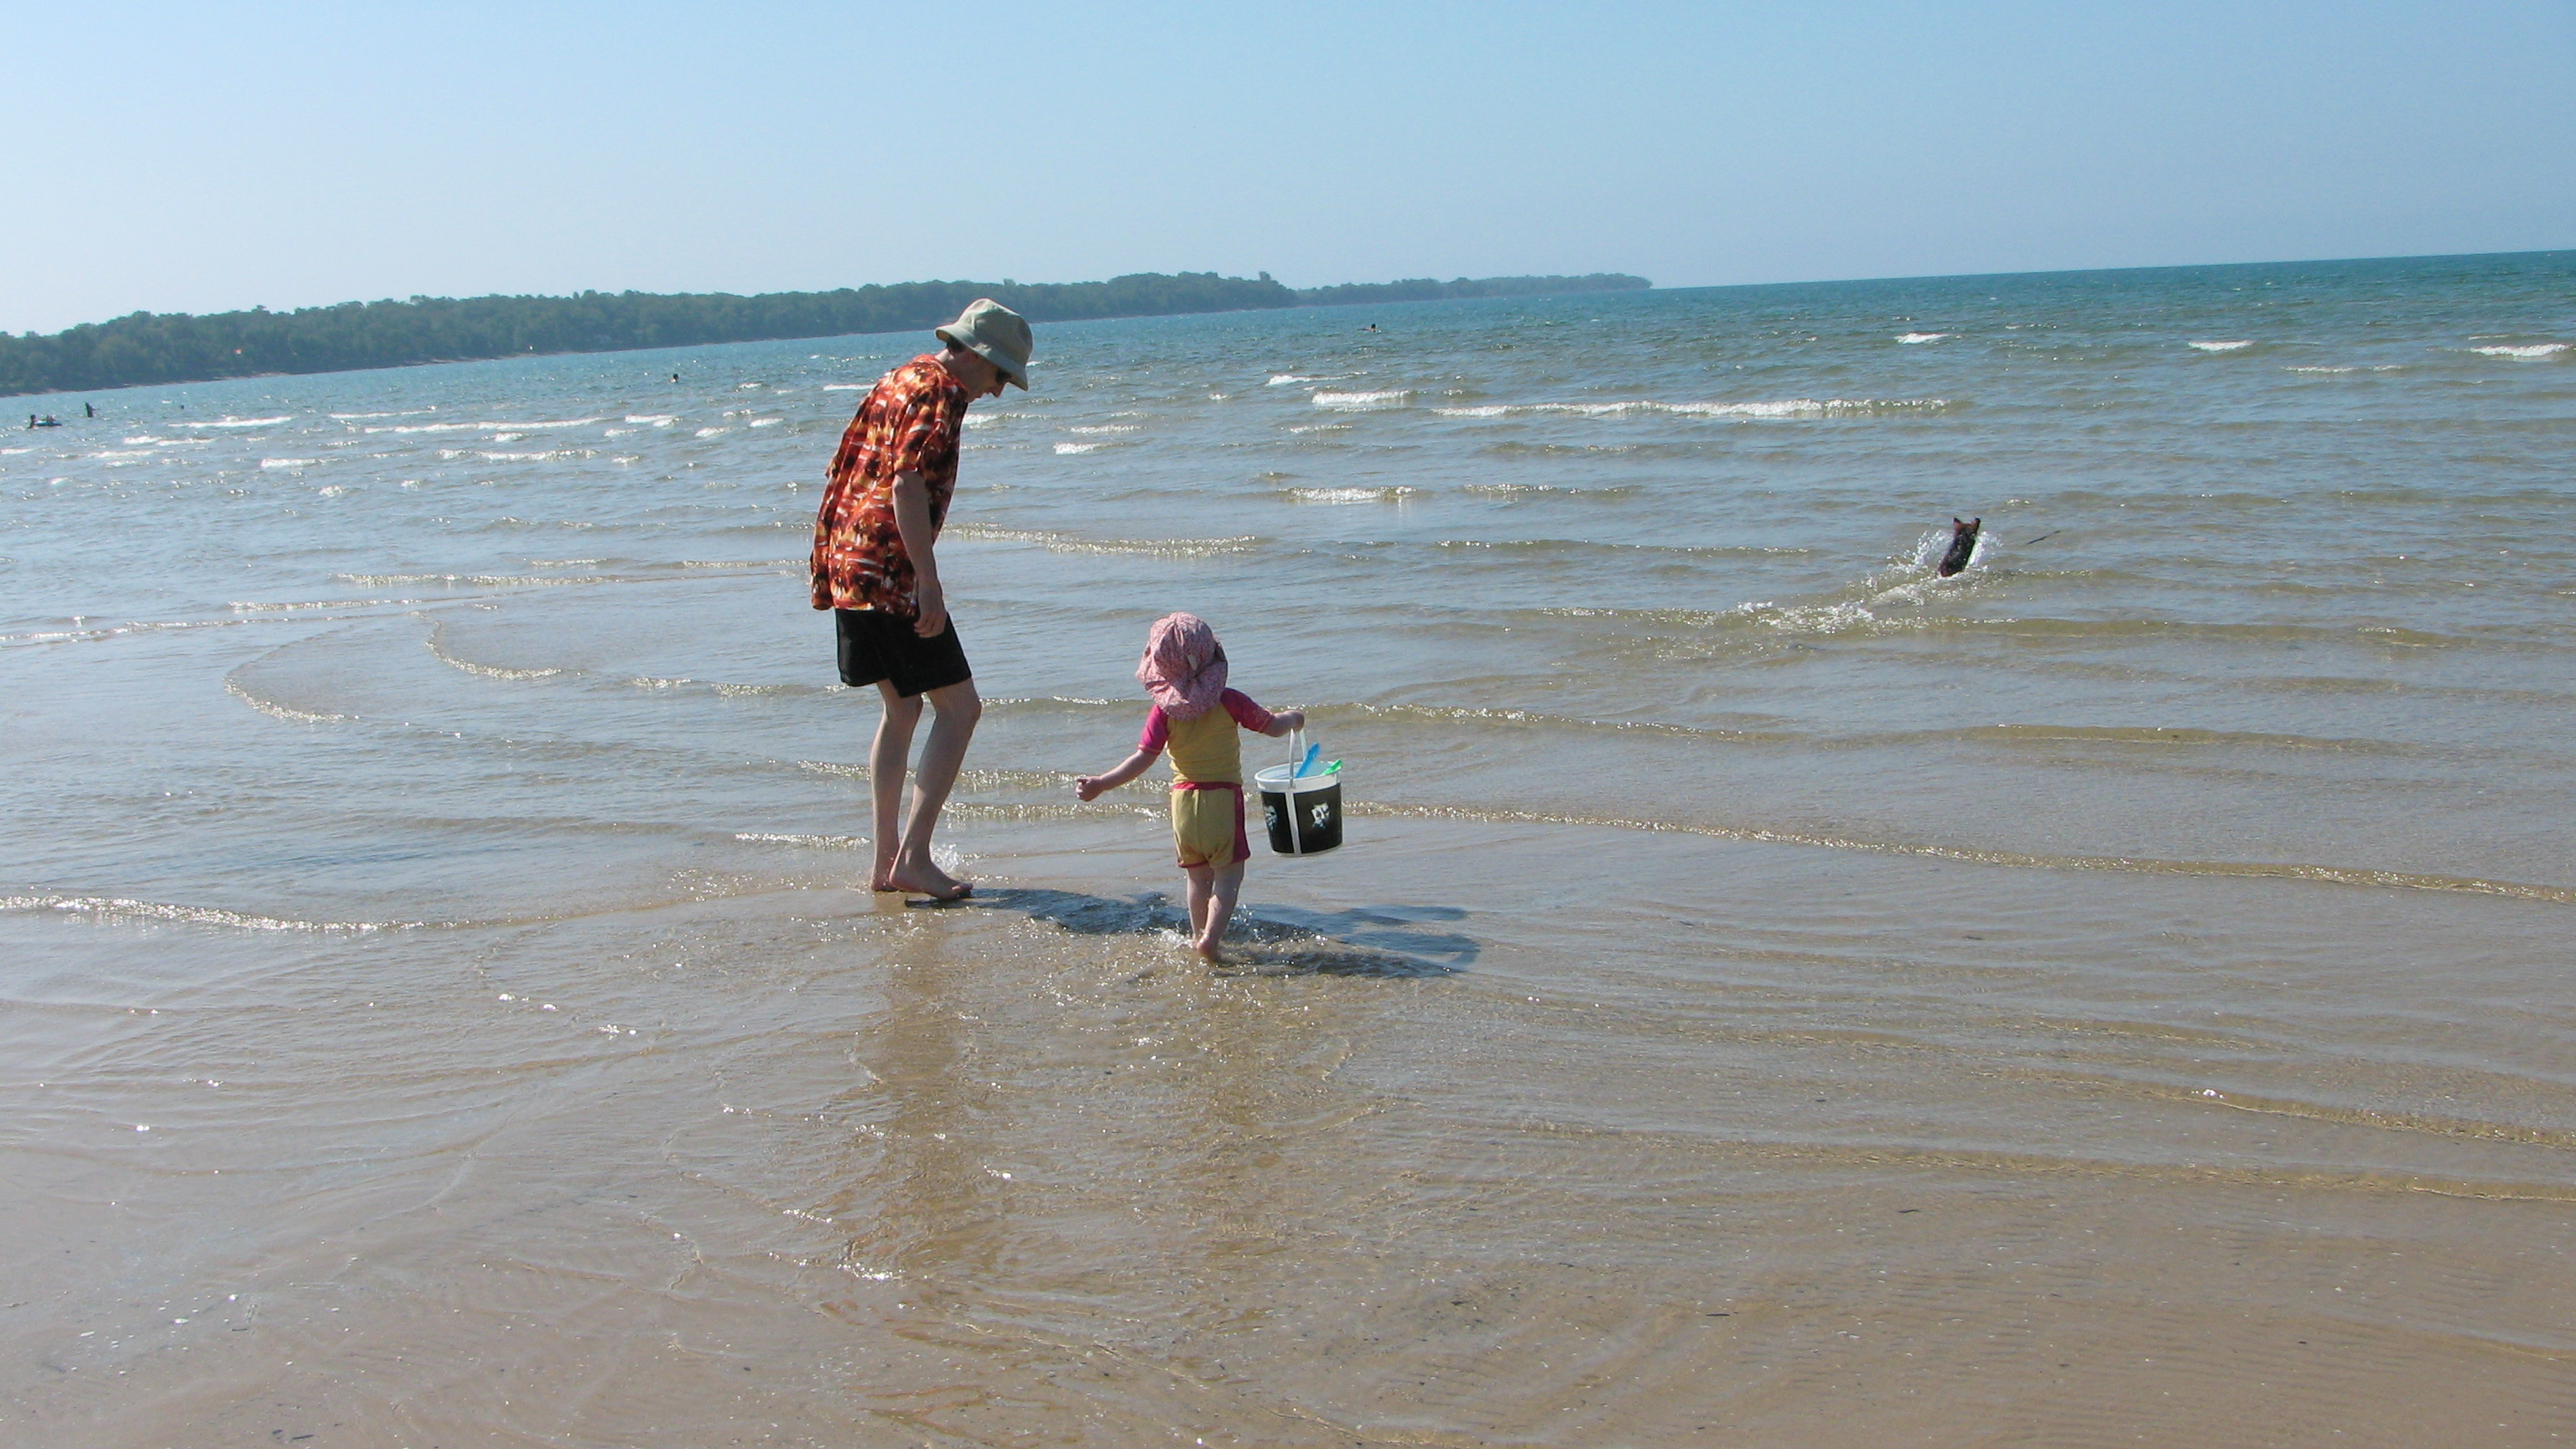 Kid at the beach, water quality, National Resource Defence Council's beach analysis